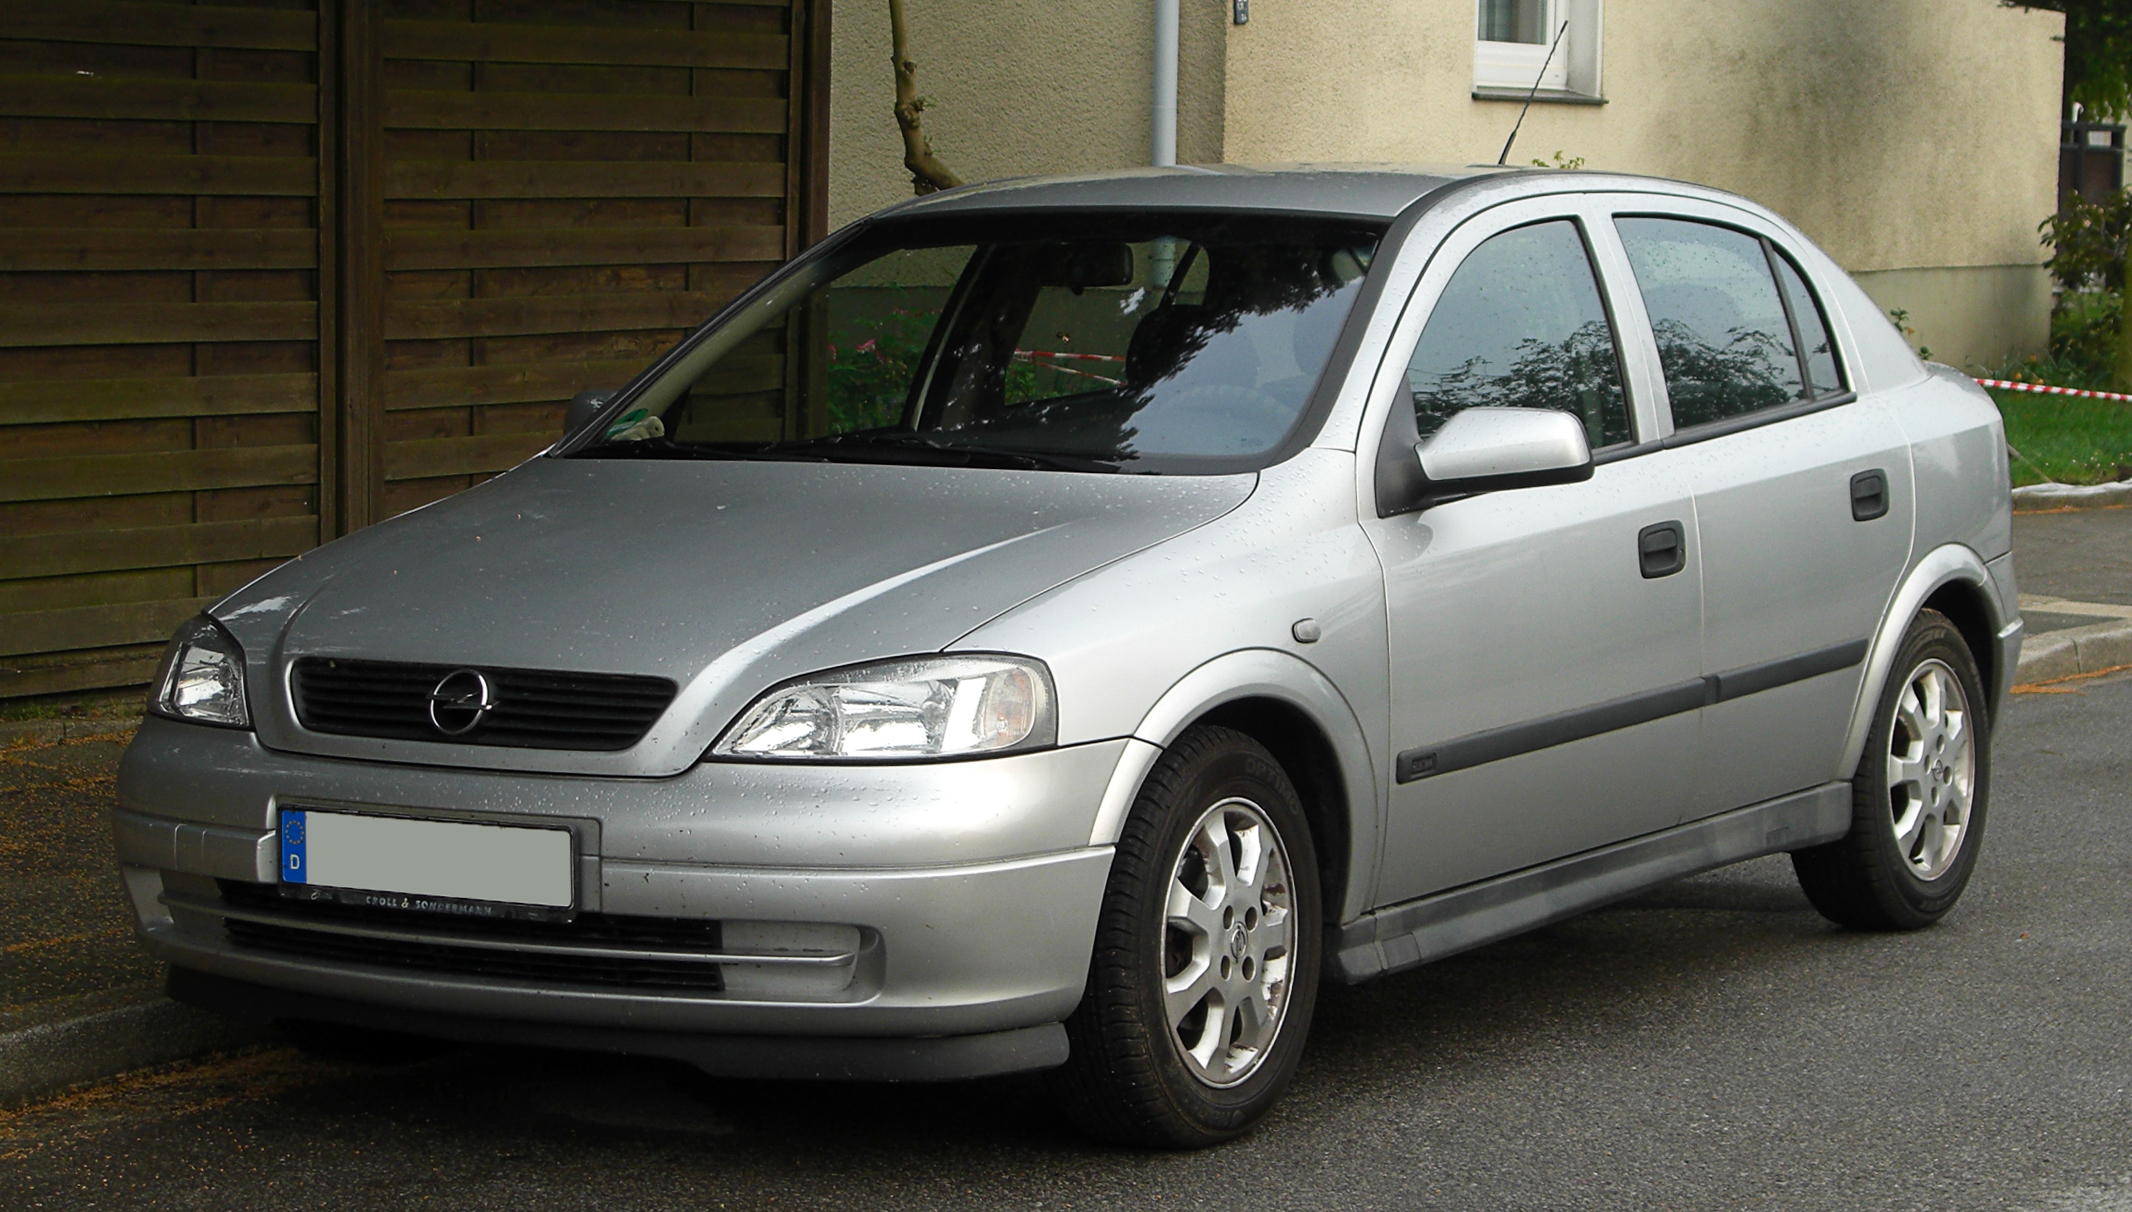 File:Opel Astra 1.6 16V Edition 2000 (G) – Frontansicht ...